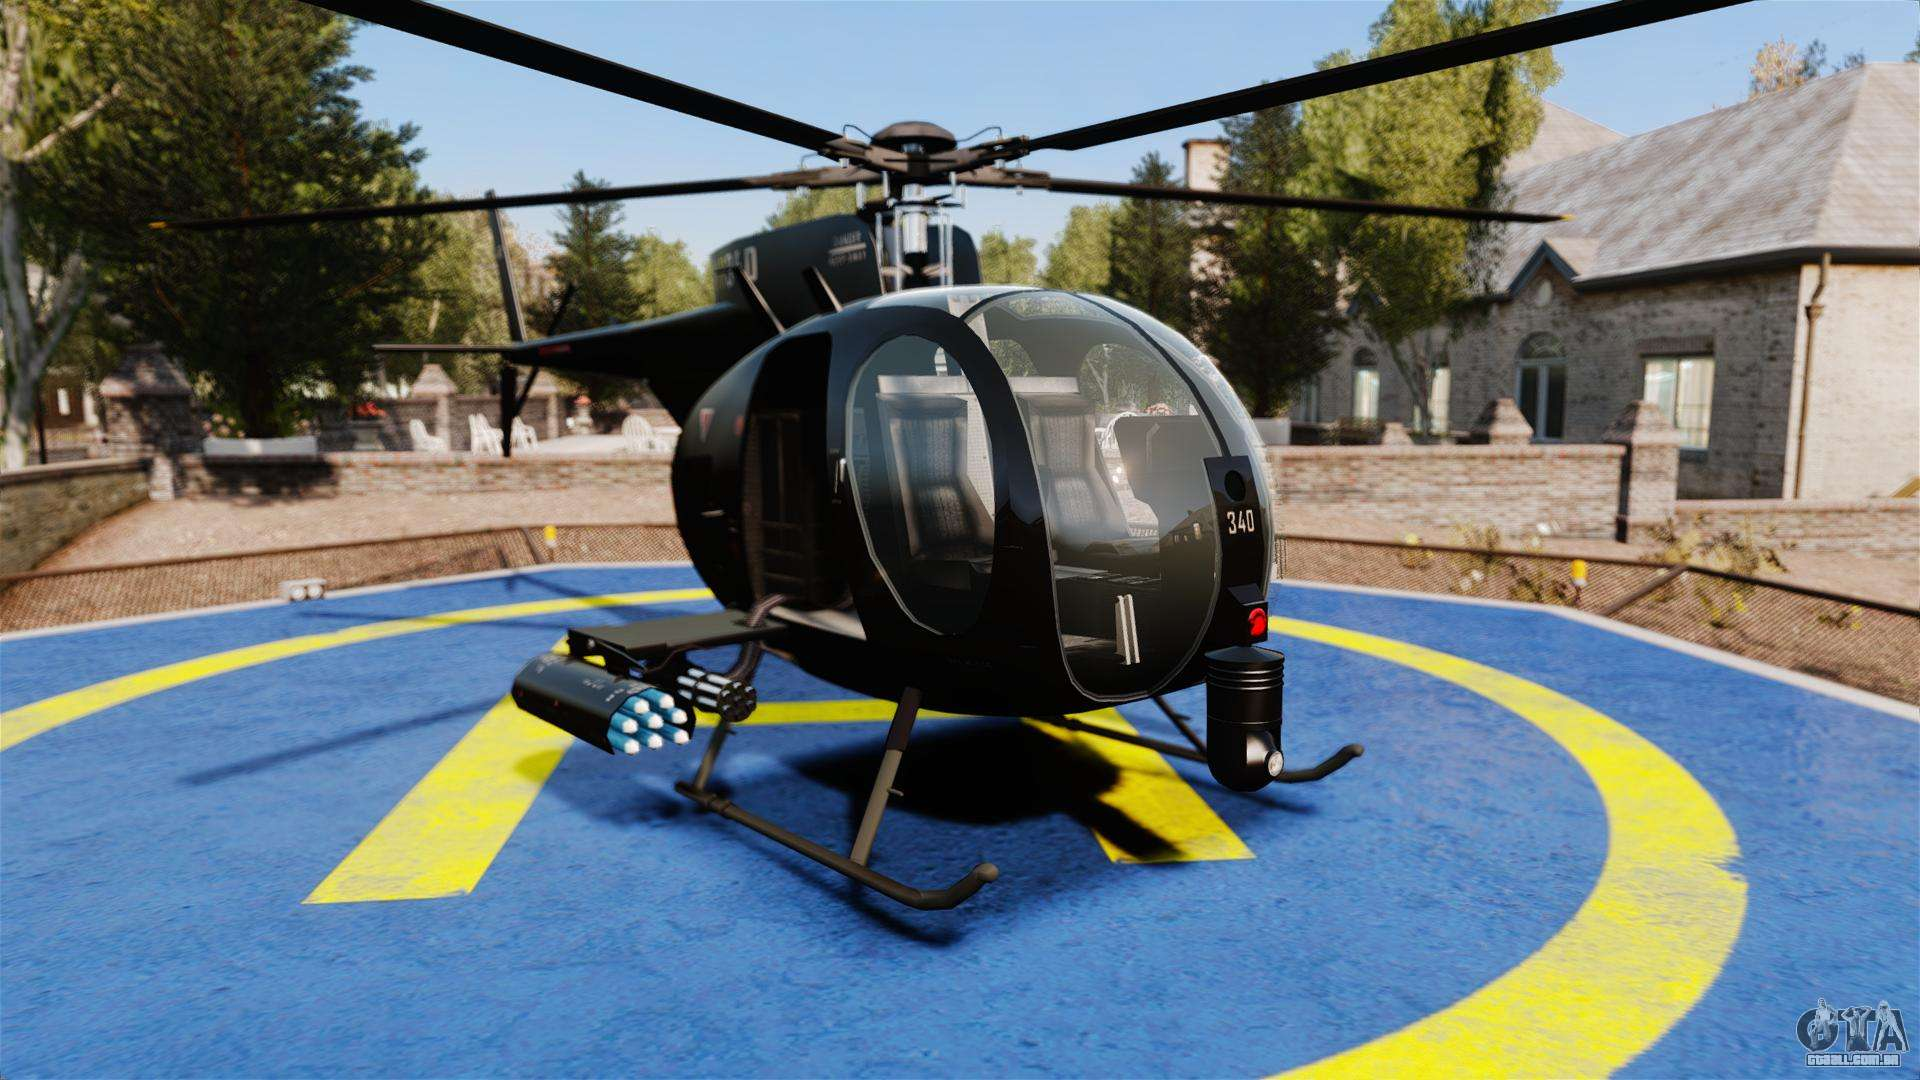 buzzard helicopter with 41718 Gta Iv Tbogt Nagasaki Buzzard on 41718 Gta Iv Tbogt Nagasaki Buzzard in addition Sikorsky ch53 main rotor 2400x1600 moreover Us Ps4 Cheats Codes For Gta 5 additionally Watch together with Ah 6j Little Bird.